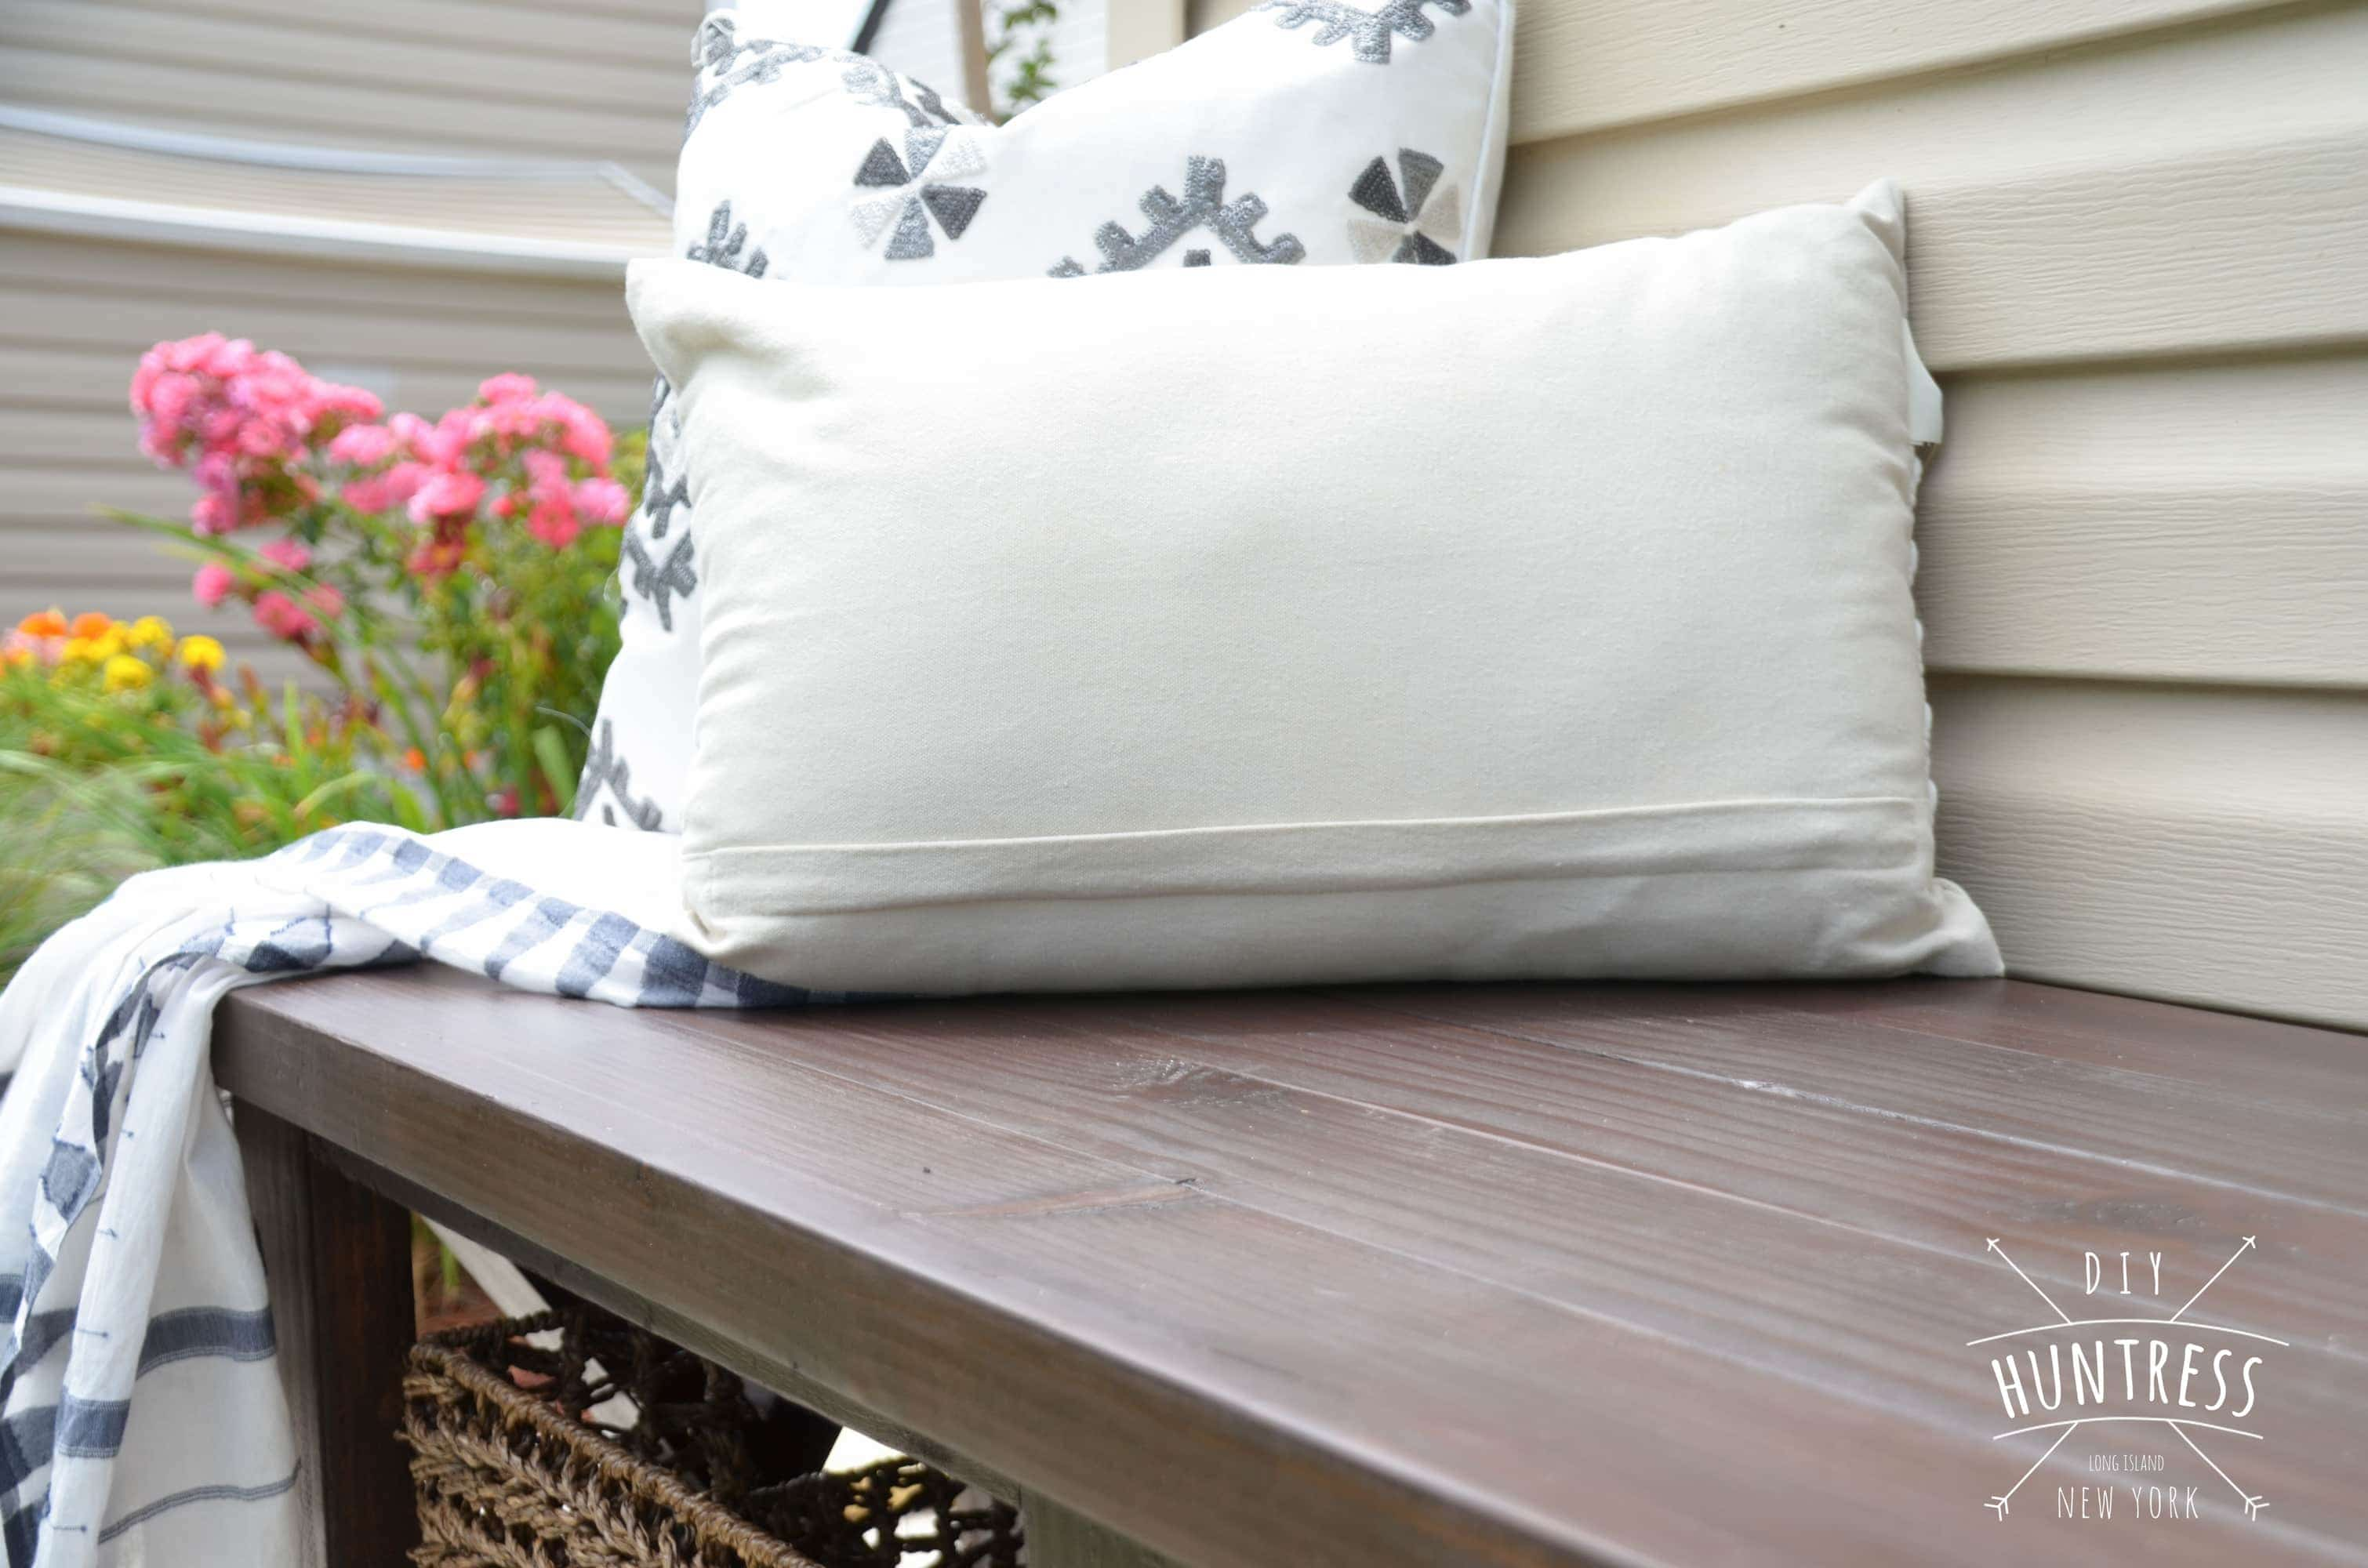 DIY_Huntress_Rustic_X_Bench-10